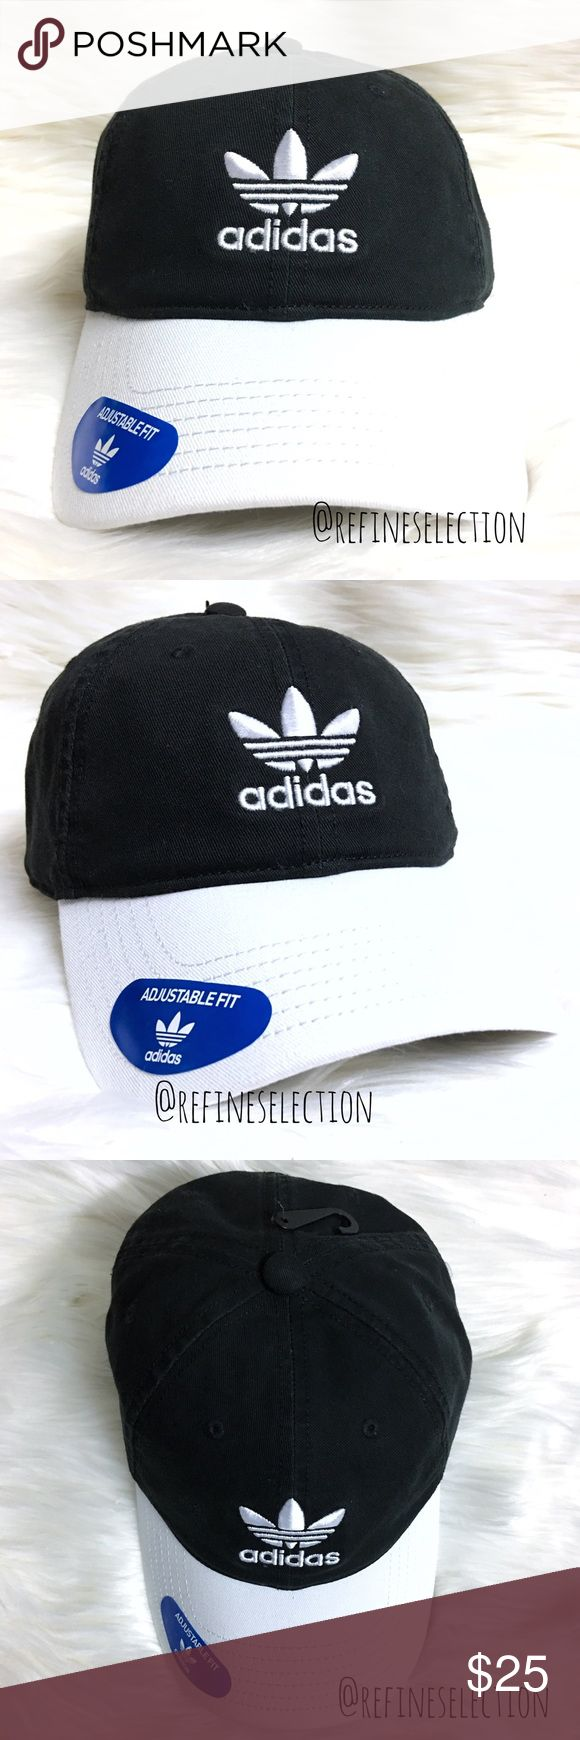 adidas Black And White Relaxed Strapback Dad Hat Brand new with tags, Adult, Unisex, One Size. This Adidas Originals Trefoil Black And White Relaxed Strapback Dad Hat Cap is a must have! Black with the Adidas Trefoil logo embroidered in white on the front and back. Adjustable strapback for the perfect fit! Interior is lined with blue and white pinstripe fabric and Adidas Trefoil trim. White on the brim. adidas Accessories Hats